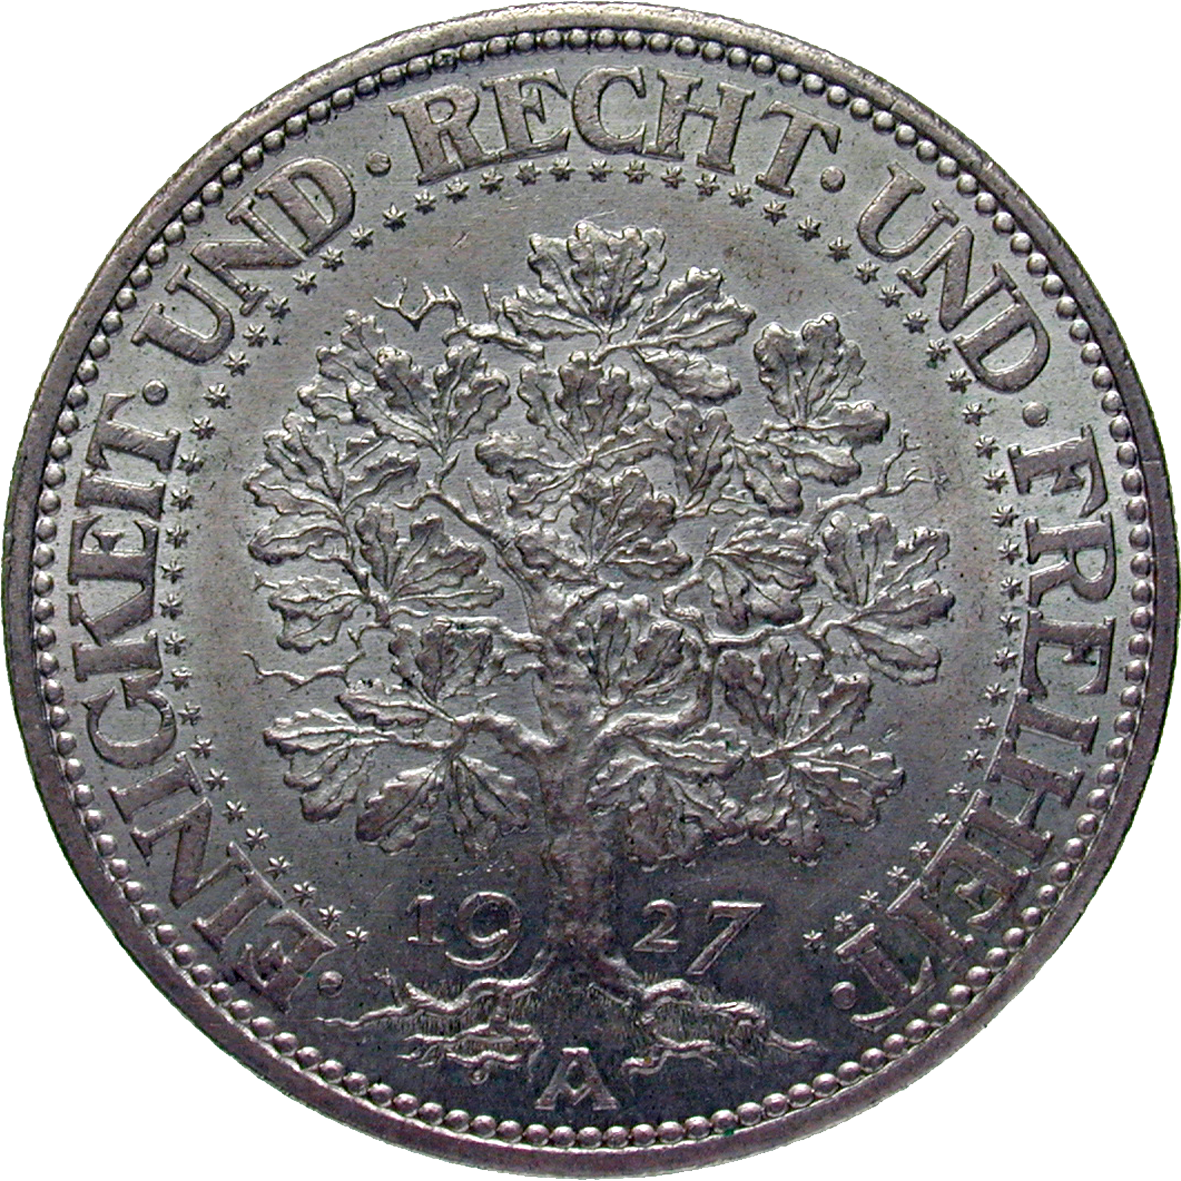 German Empire, Weimar Republic, 5 Reichsmark 1927 (reverse)